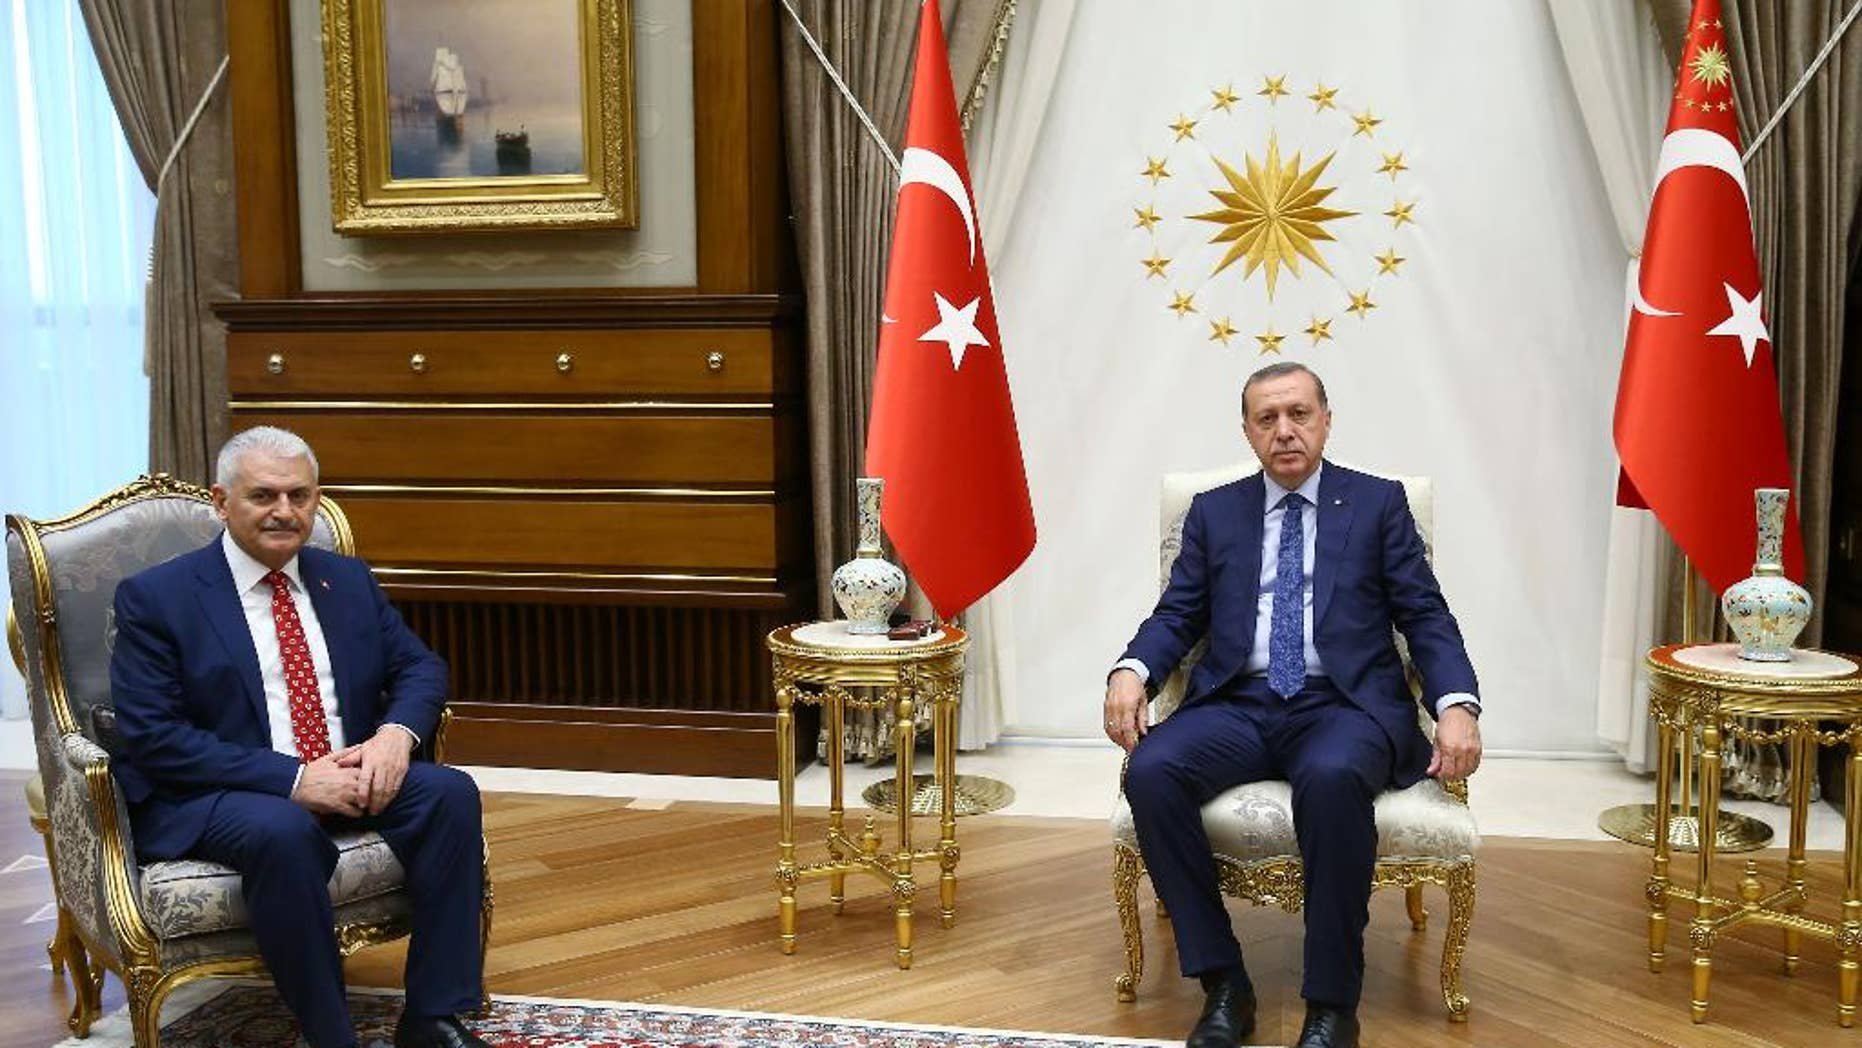 Turkey's President Recep Tayyip Erdogan, right, and Binali Yildirim, the ruling party's new chairman, pose for a photograph.